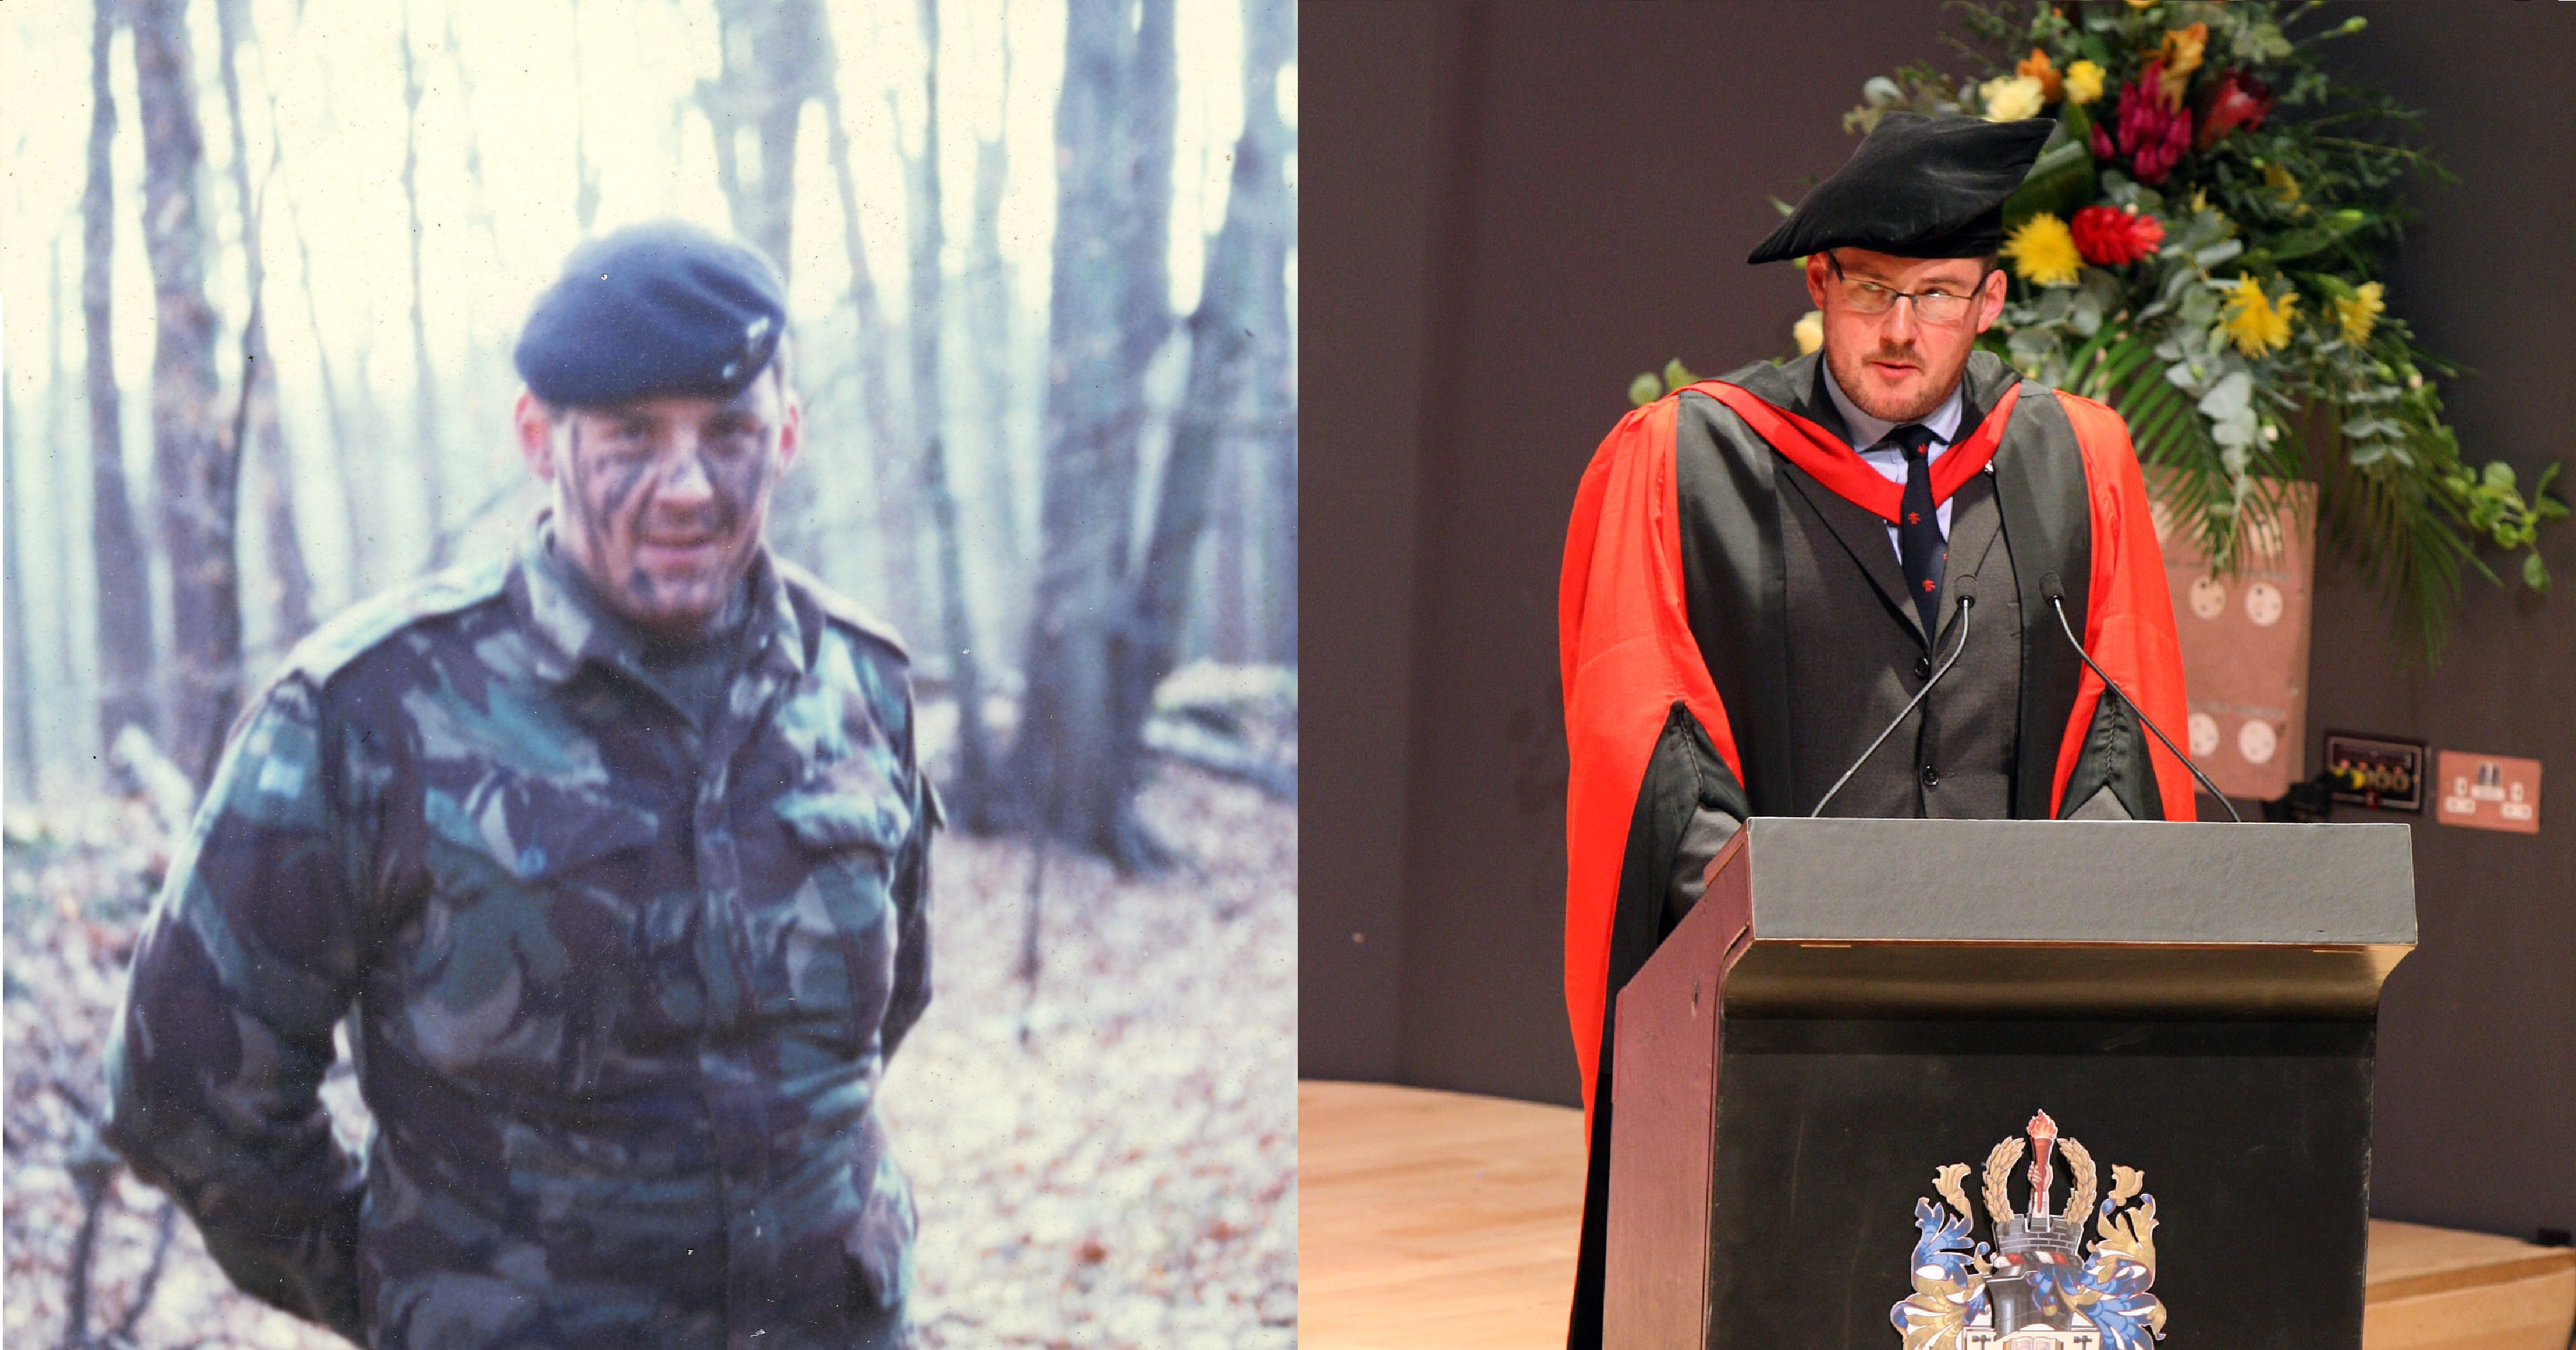 Gunner Tissington and Professor Tissington, seperated by 30 years